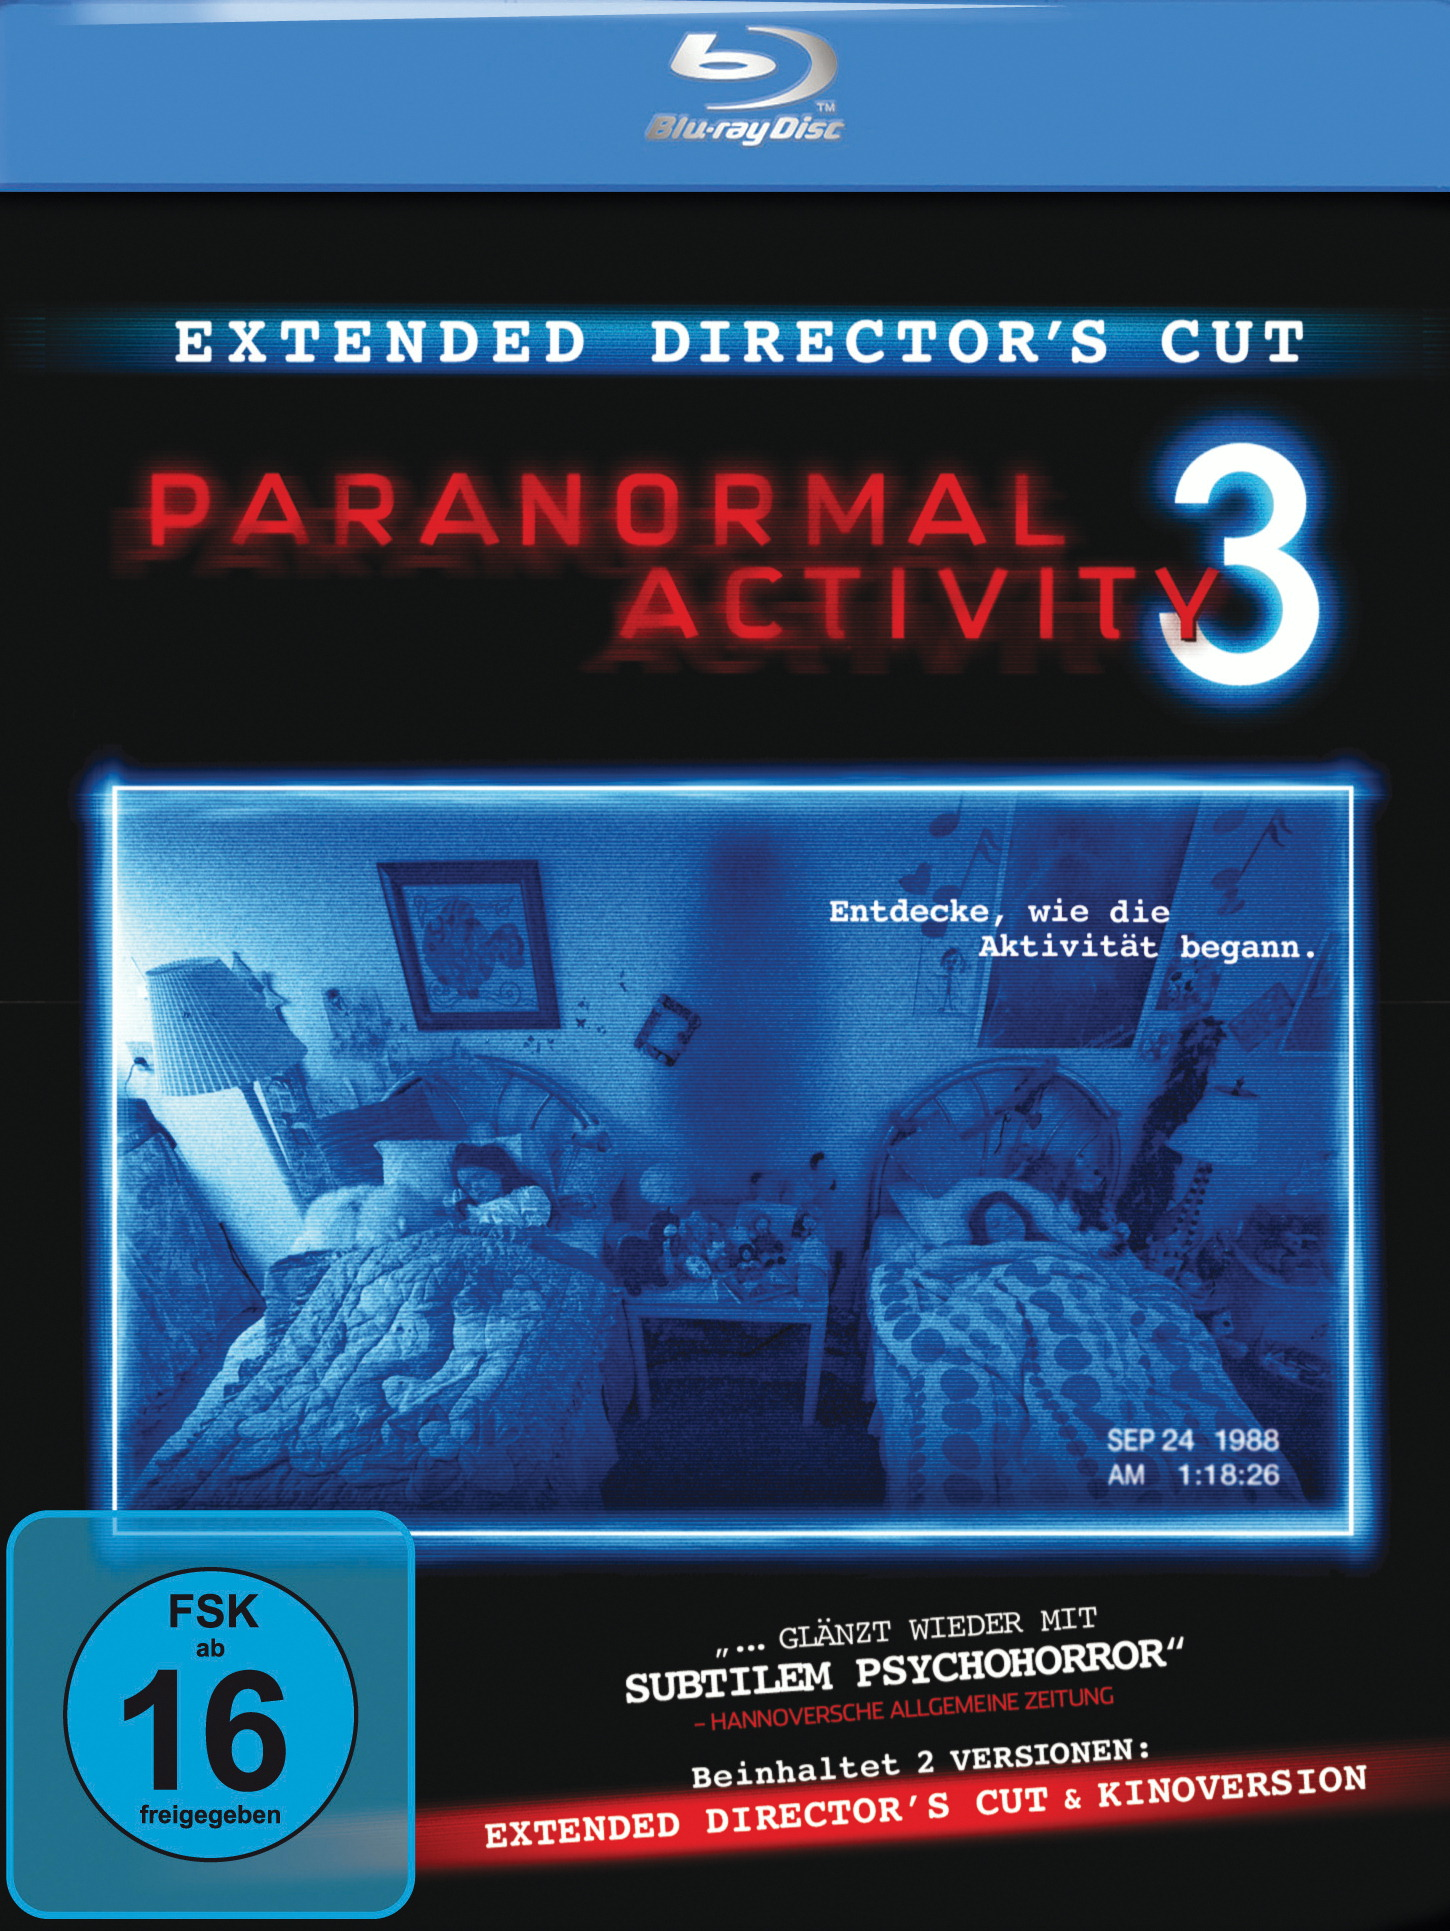 Paranormal Activity 3 (Extended Director's Cut) Poster